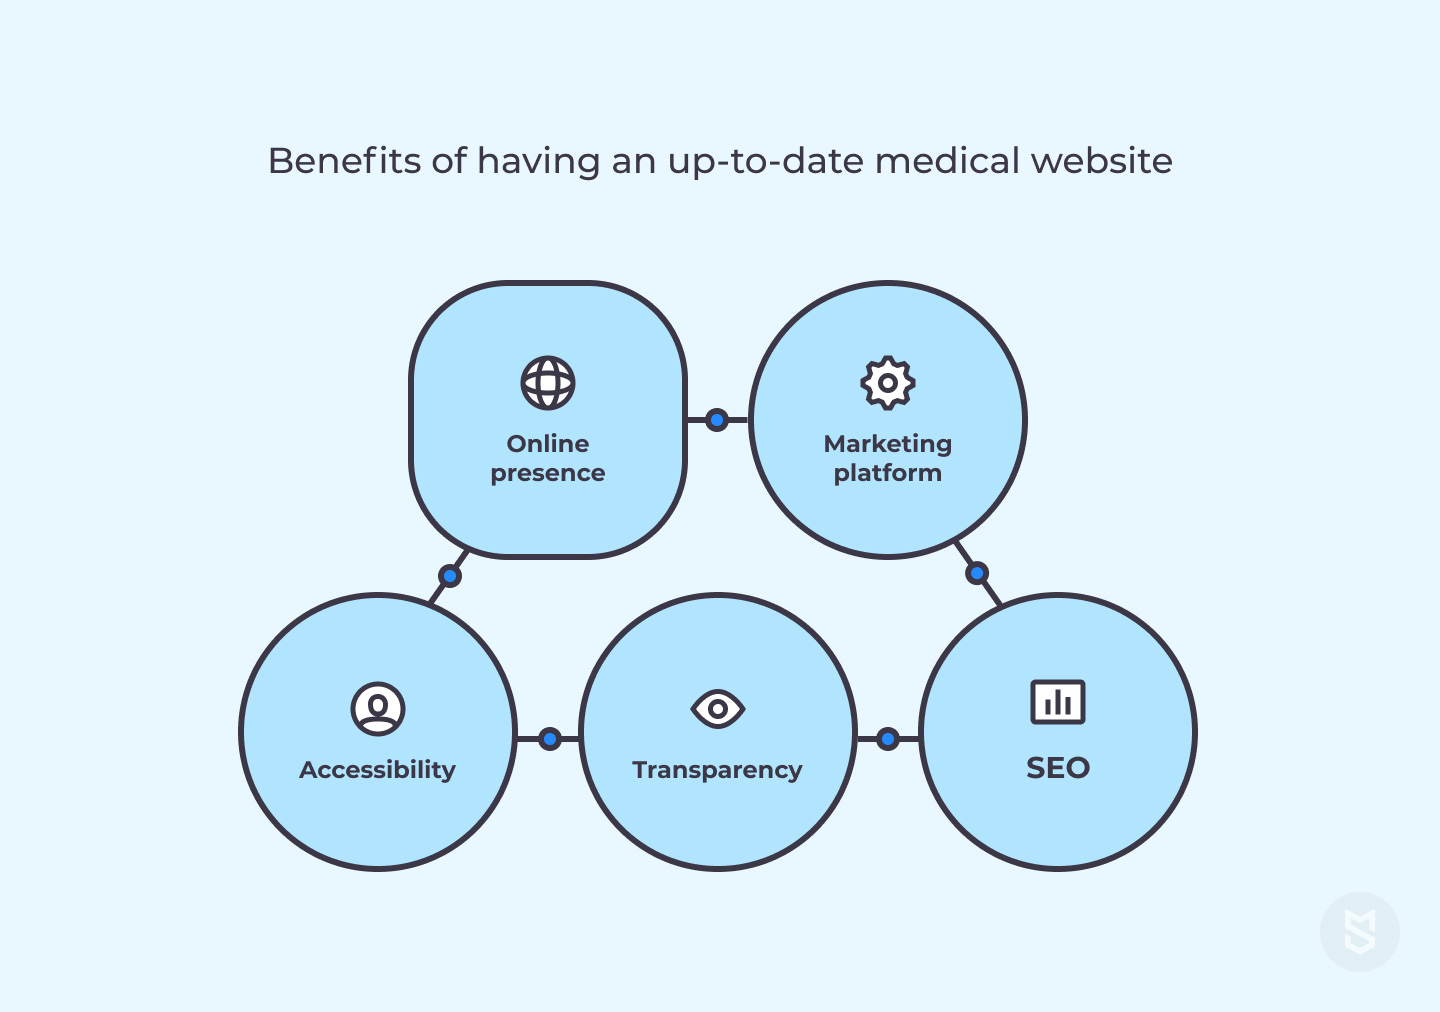 Benefits of having an up-to-date medical website